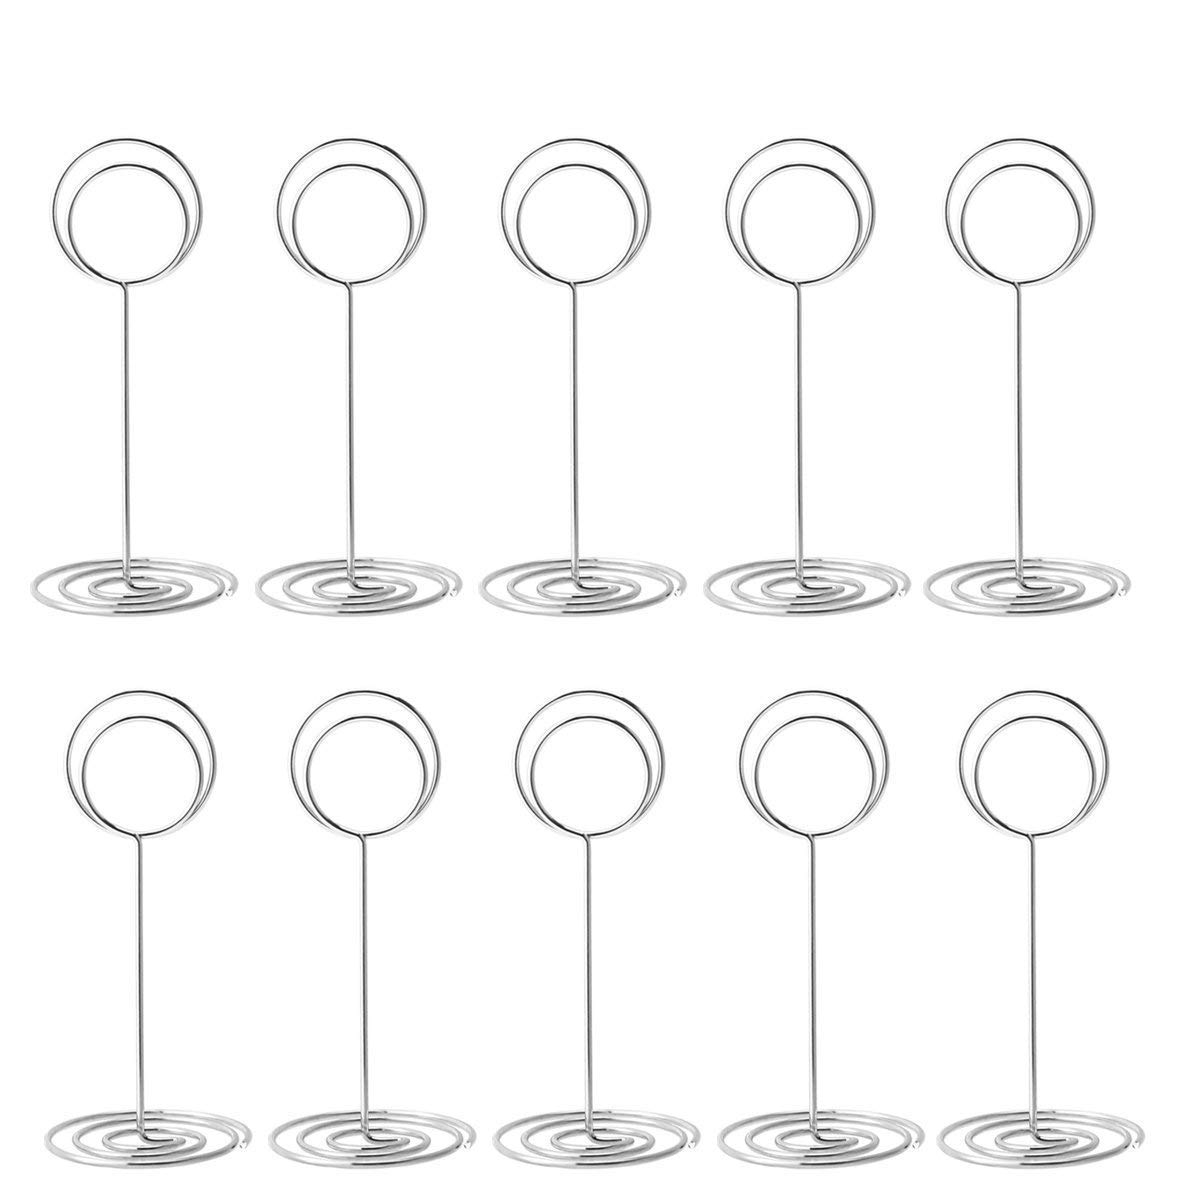 Aieve Table Card Holders,12 Pack Place Card Holders Table Number Holder Stand Clip Wire Photo Holders for Weddings Restaurant Tables Picture Card Memo Menu Holder,Silver